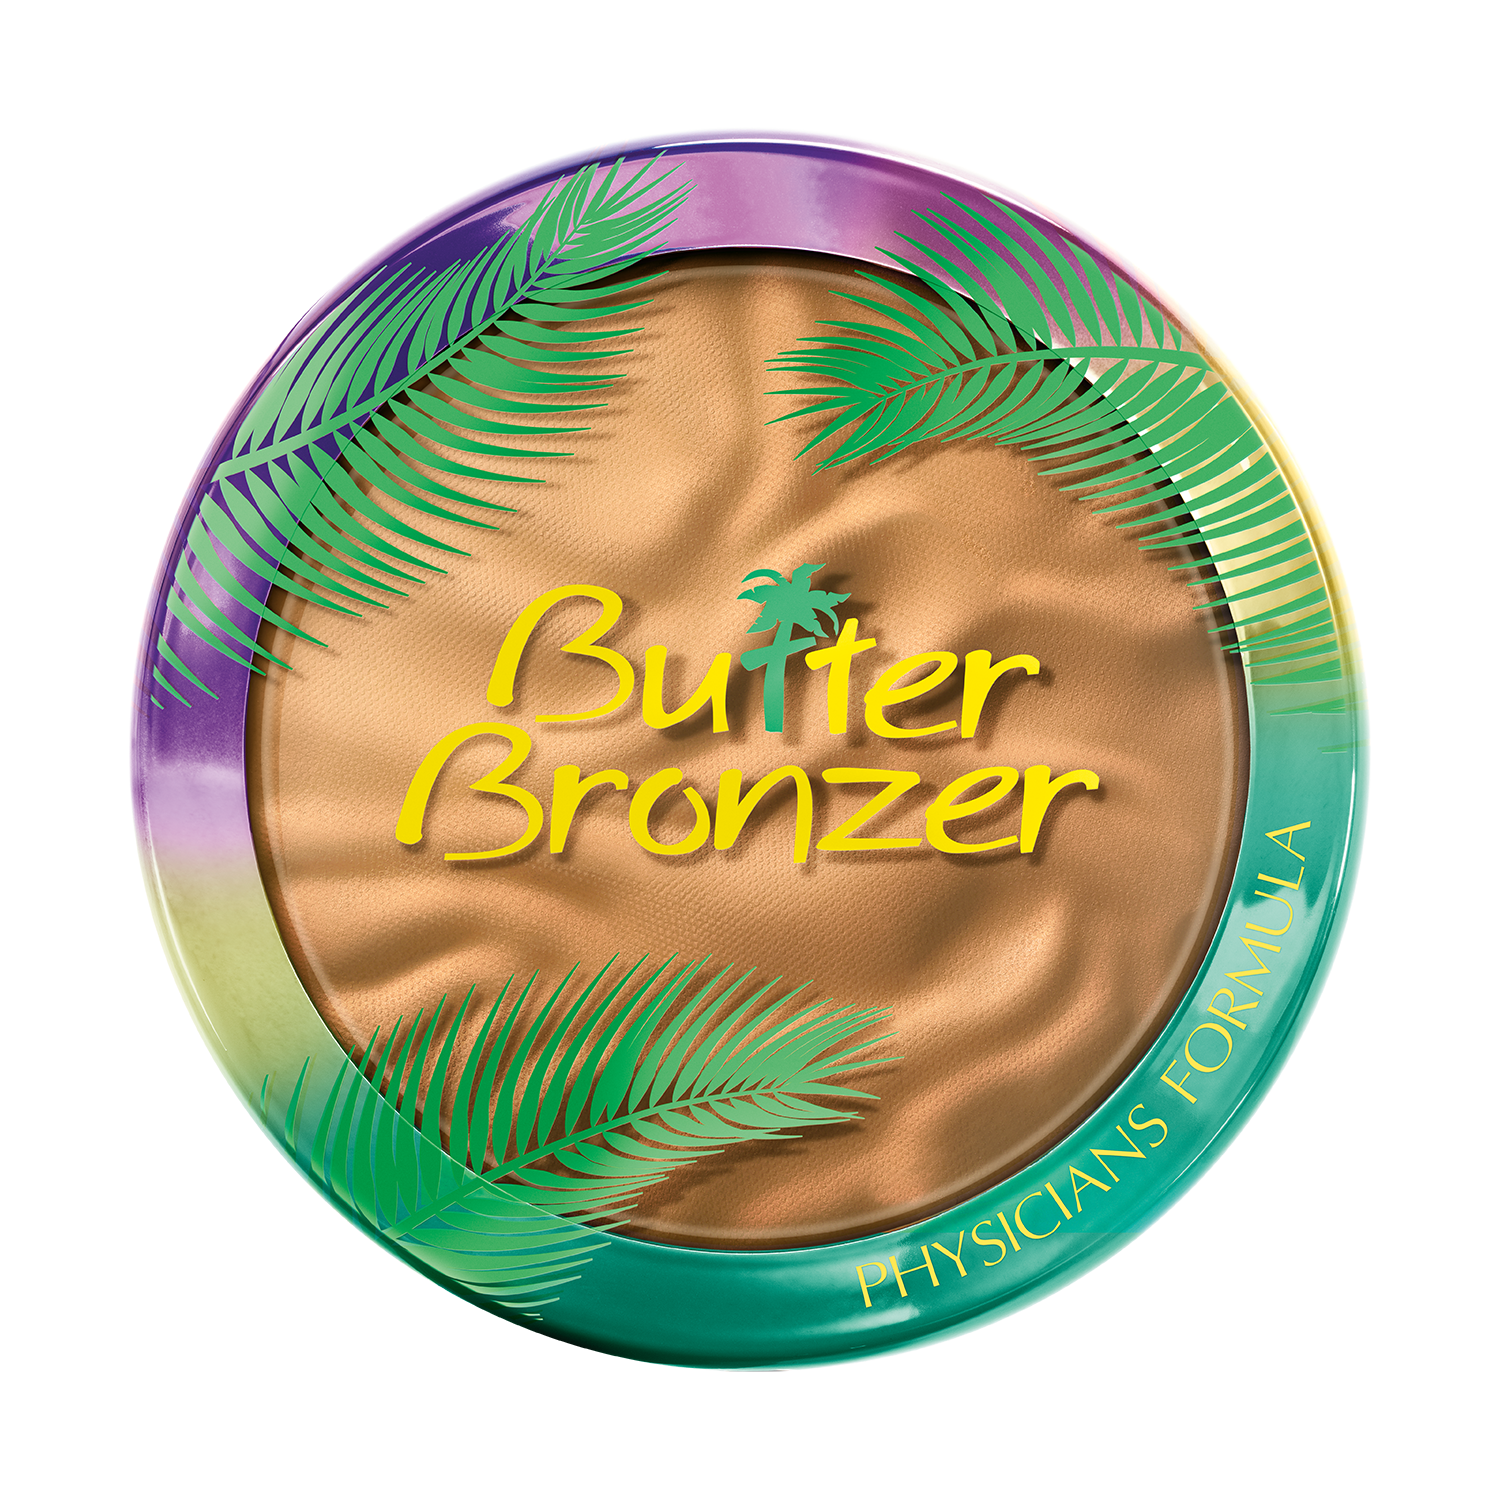 PF10568_Murumuru Butter Bronzer Sunkissed_closed_1500x1500px.png